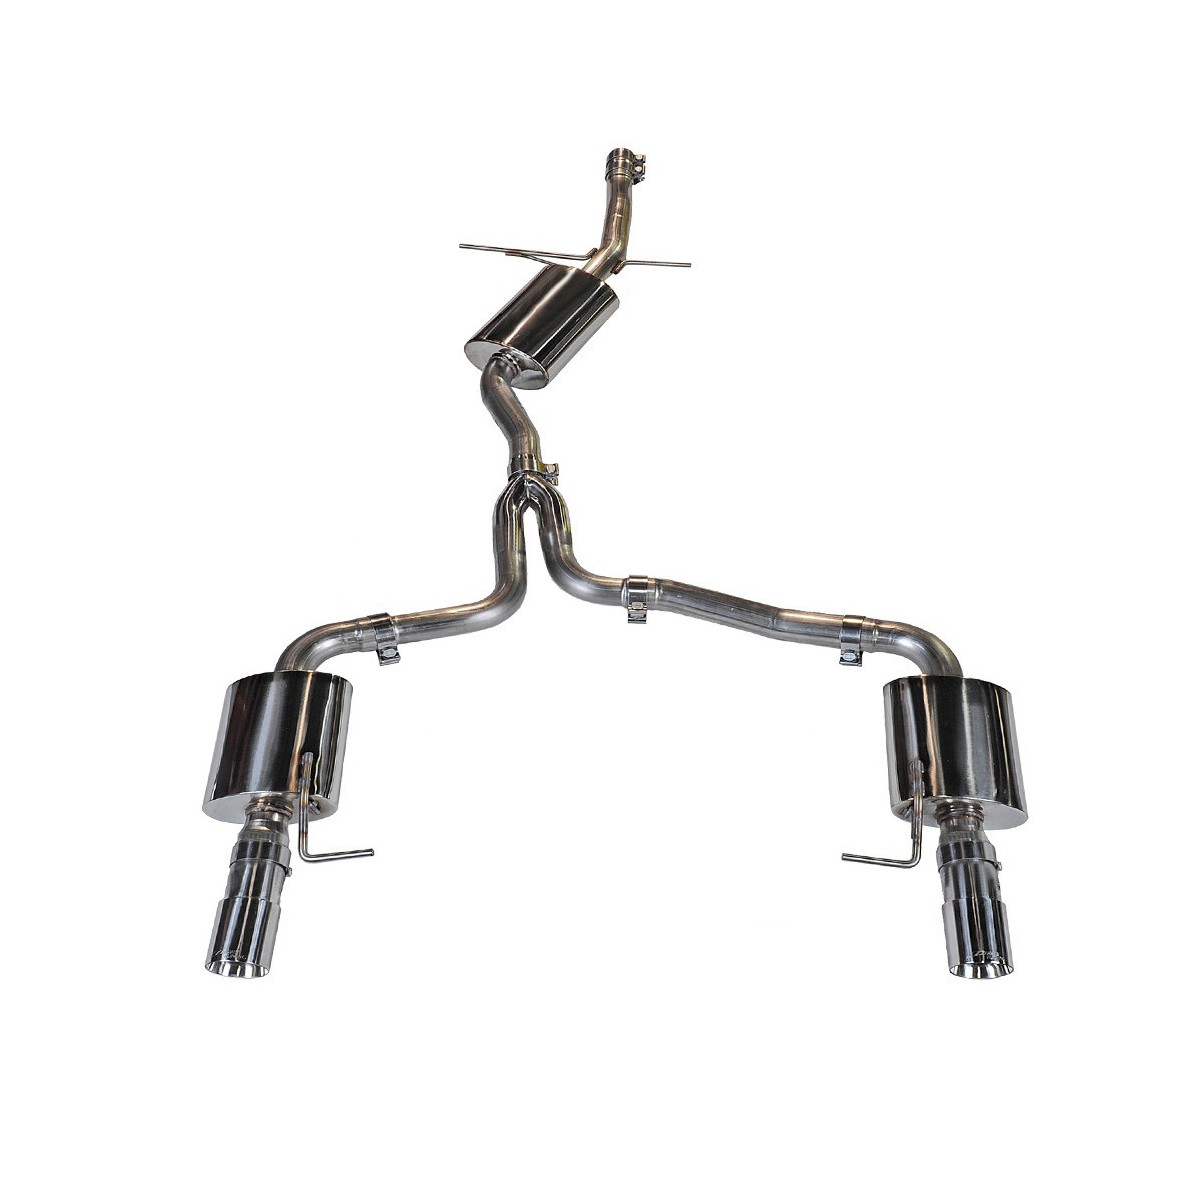 AWE Tuning B8.5 Audi A4 2.0T Touring Edition Dual Outlet Cat-Back Exhaust System